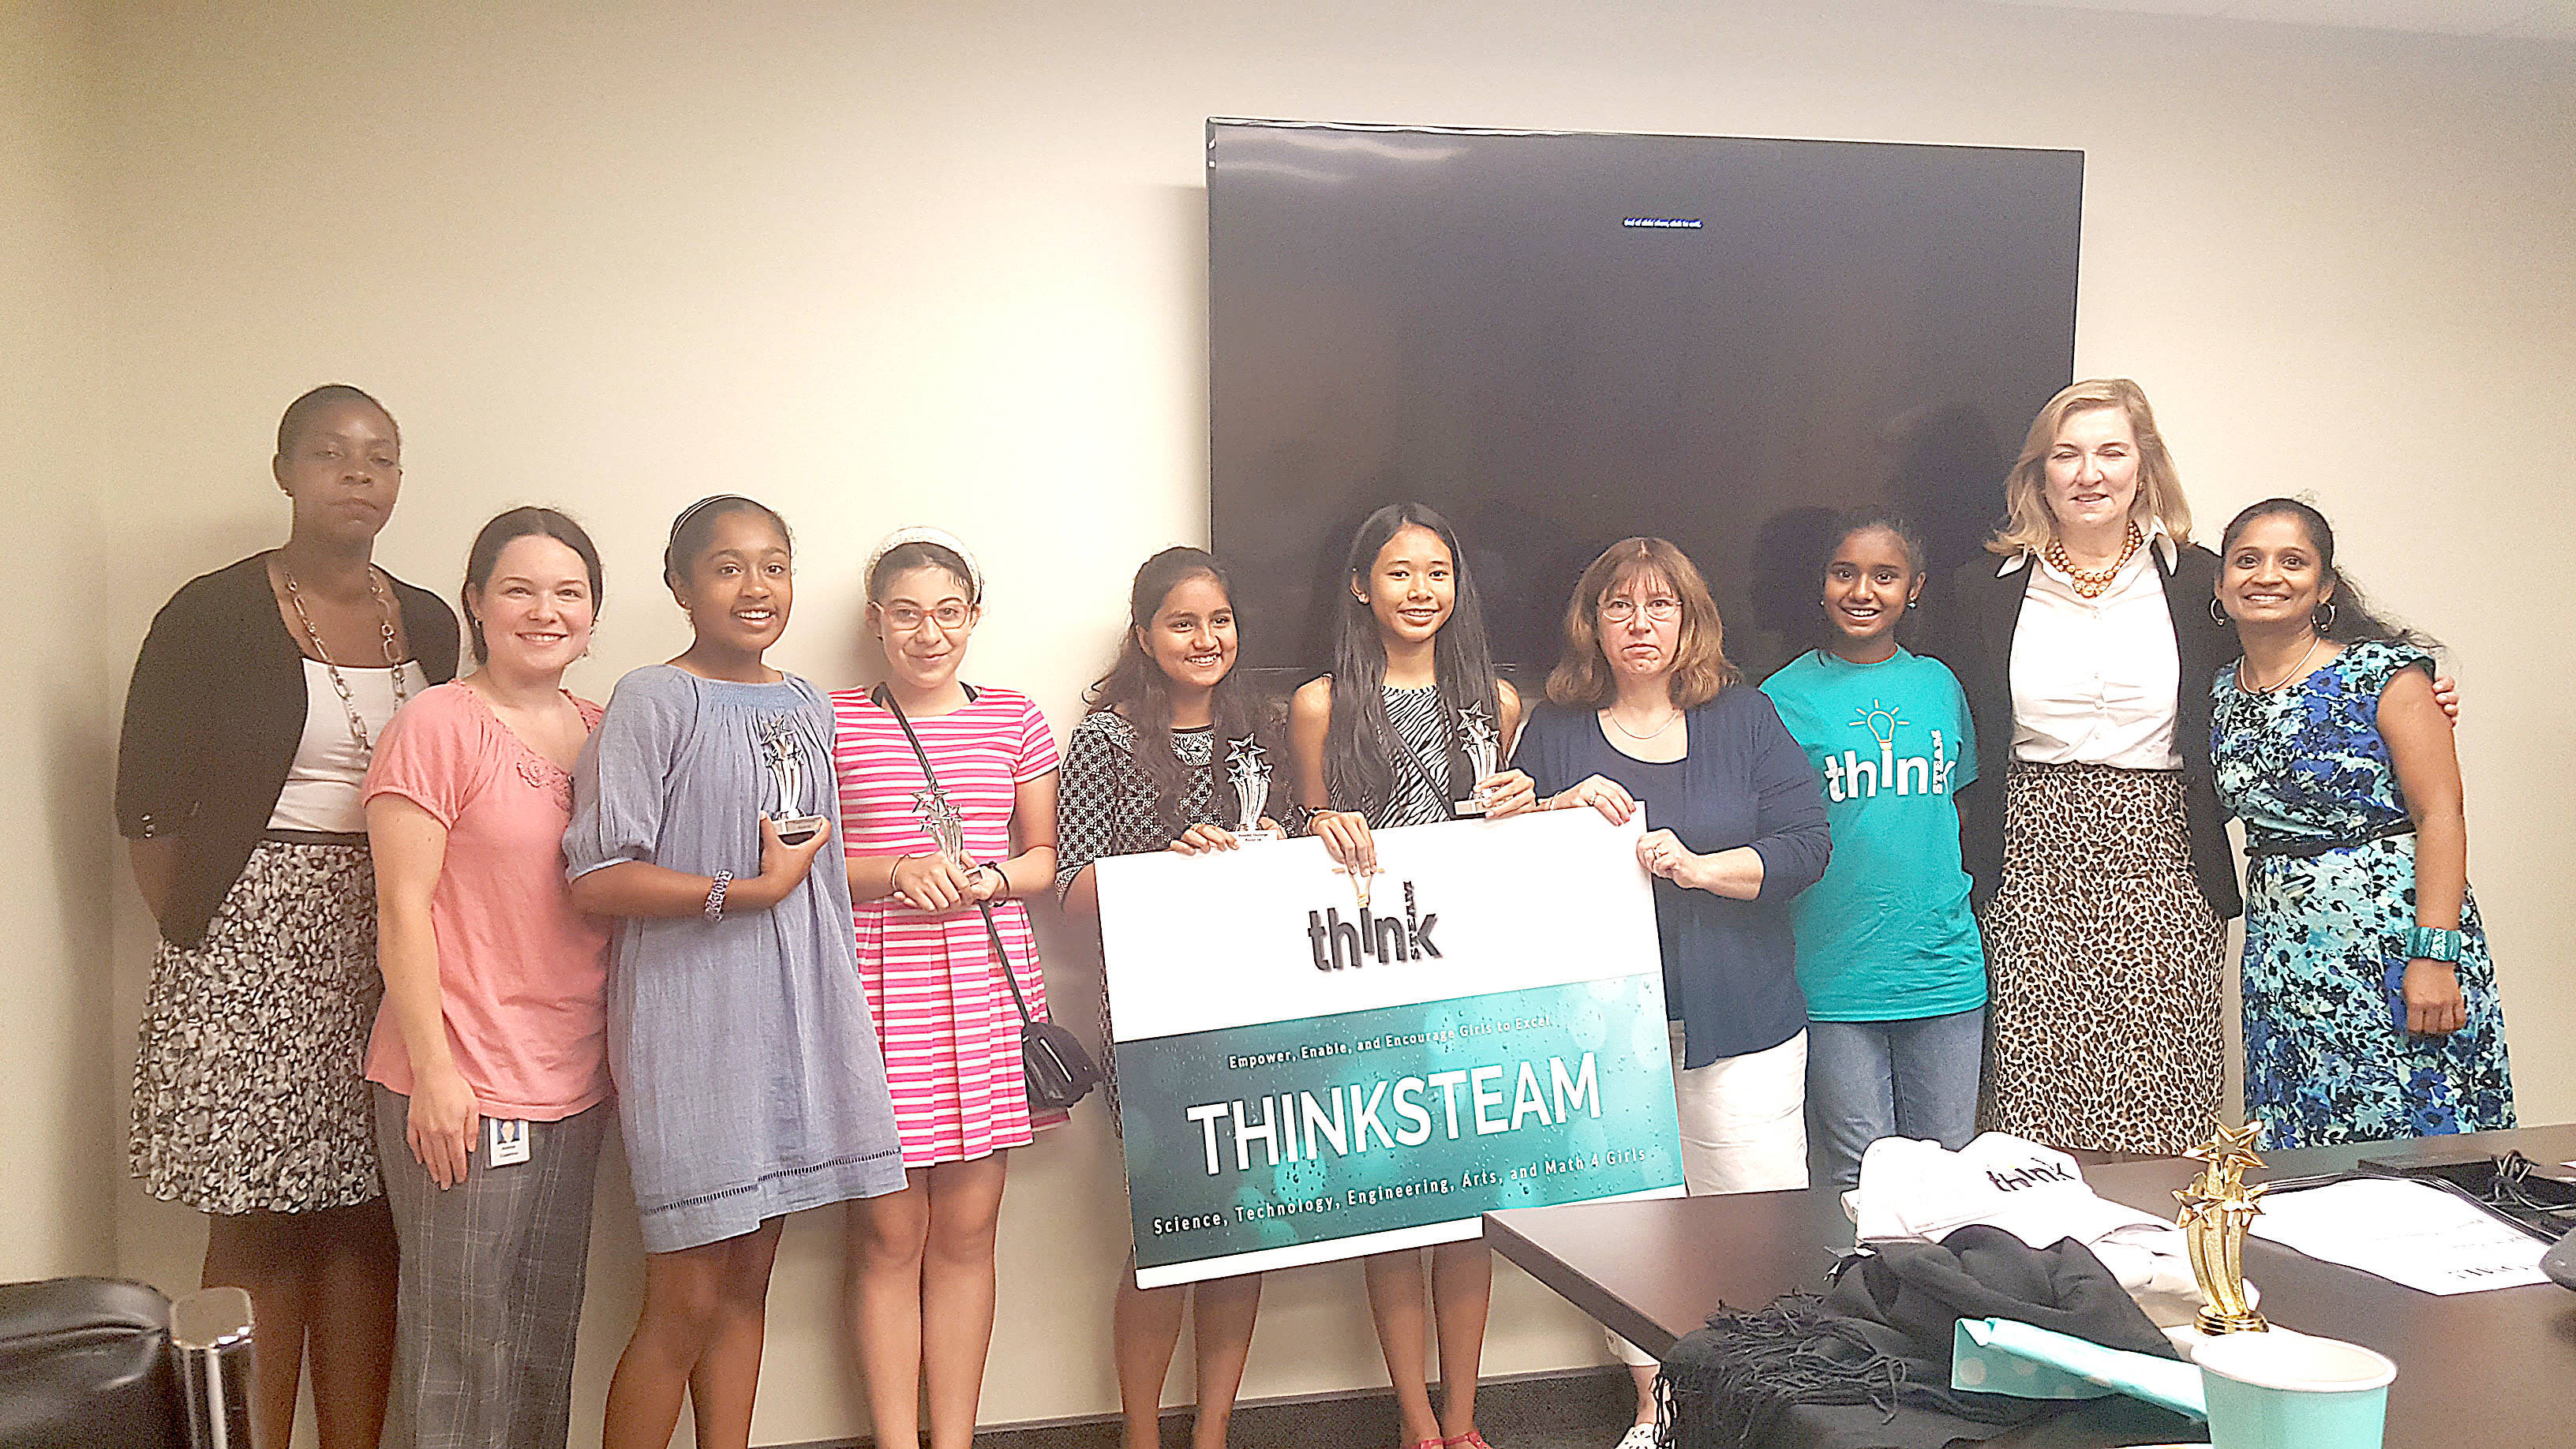 ThinkSTEAM Awards Middle School Students